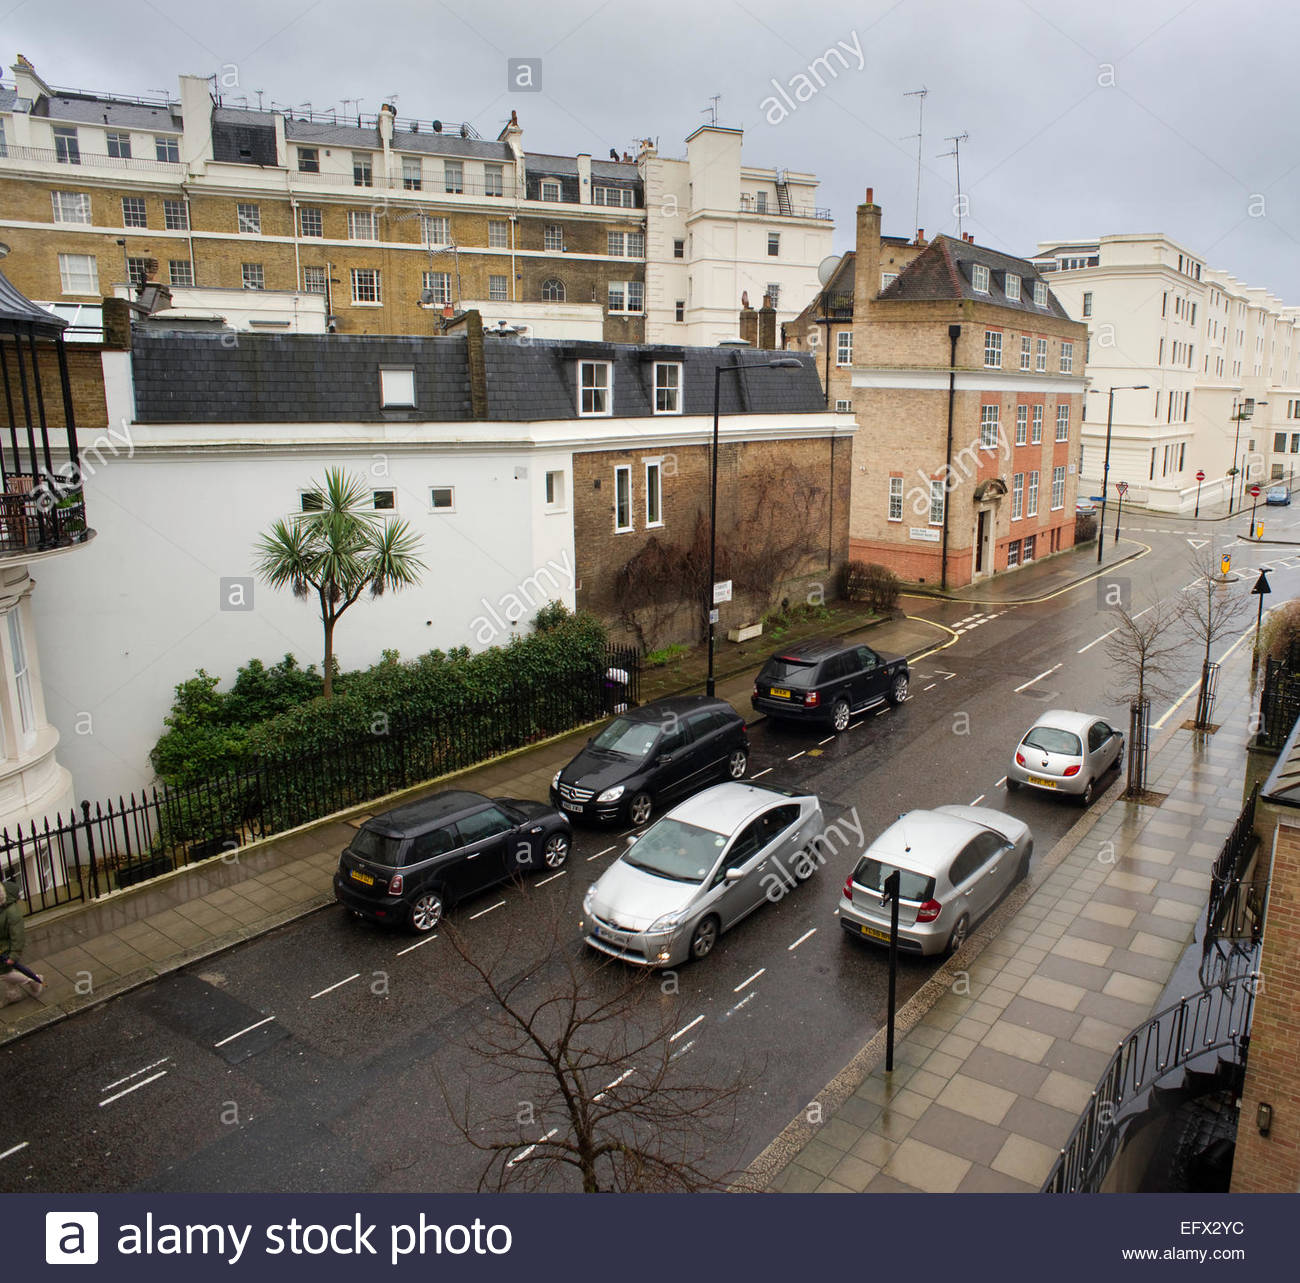 United Kingdom Great Britain British UK Central London Nobody Outdoor Exterior Architecture And Buildings Built - Stock Image